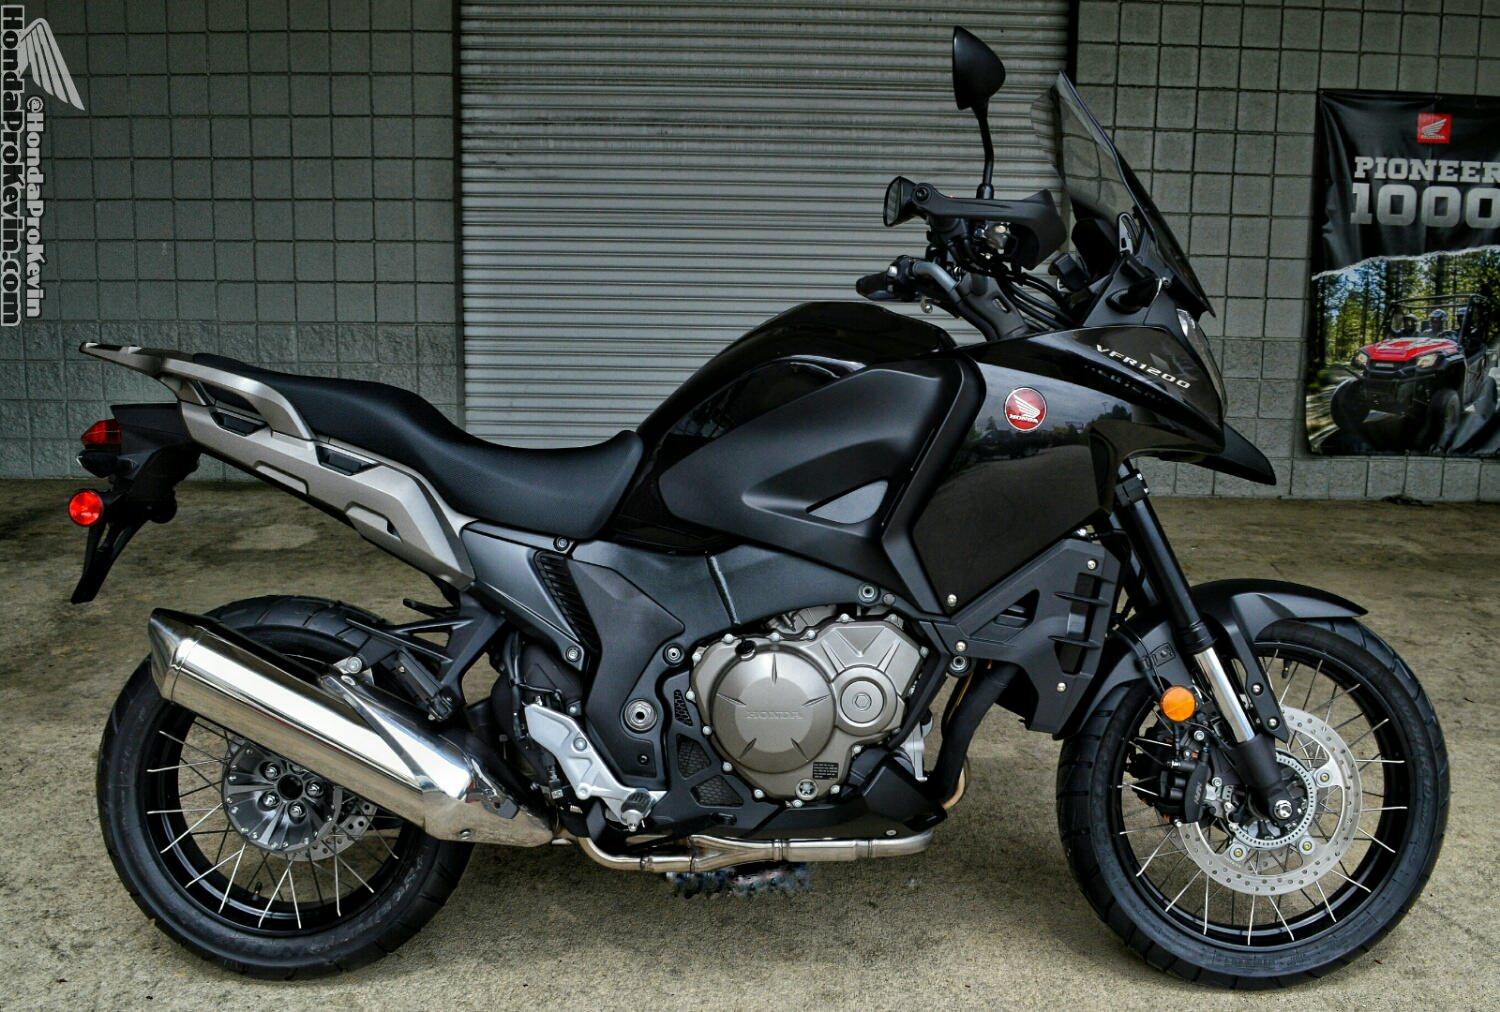 2016 VFR1200X Review of Specs | New Motorcycle - Adventure ...